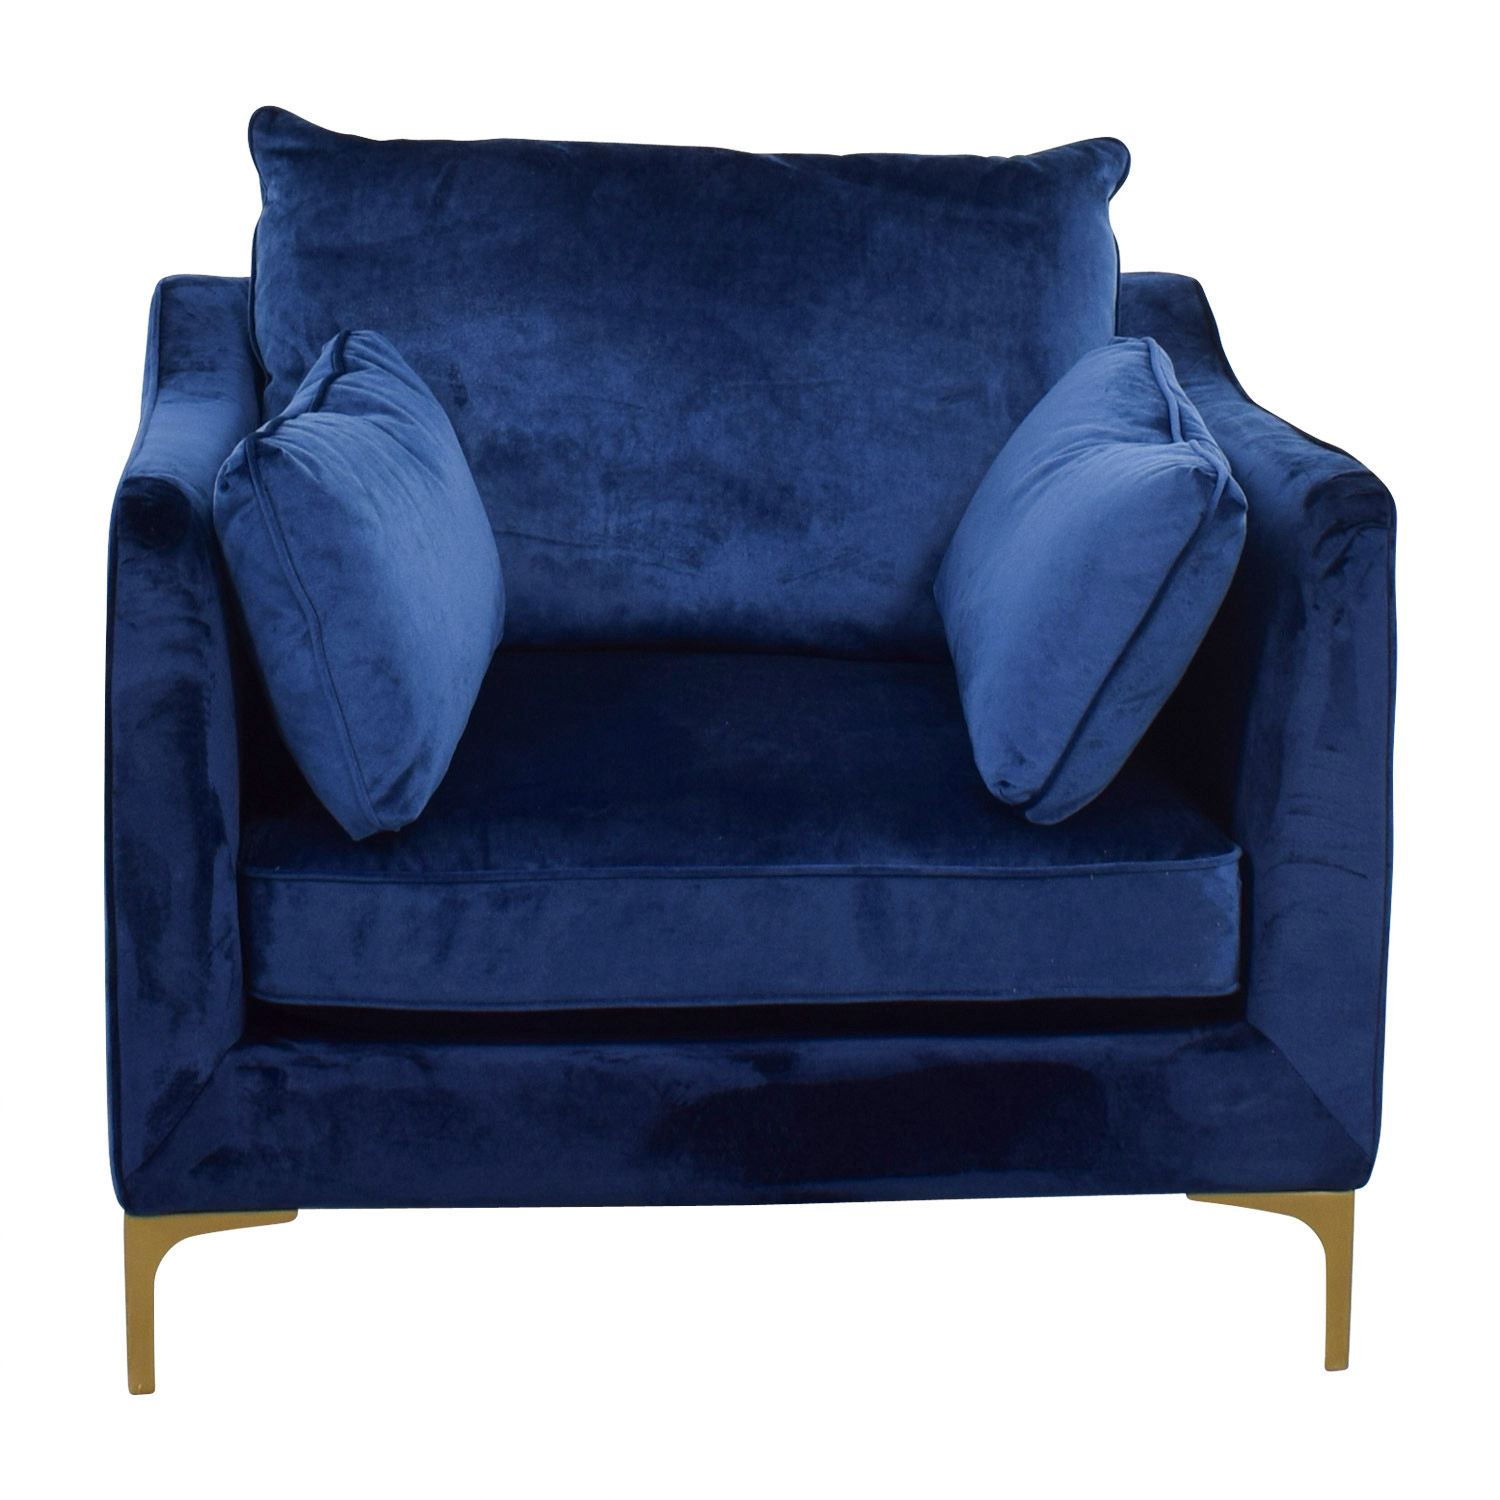 Velvet Oxford Blue Accent Chair nj